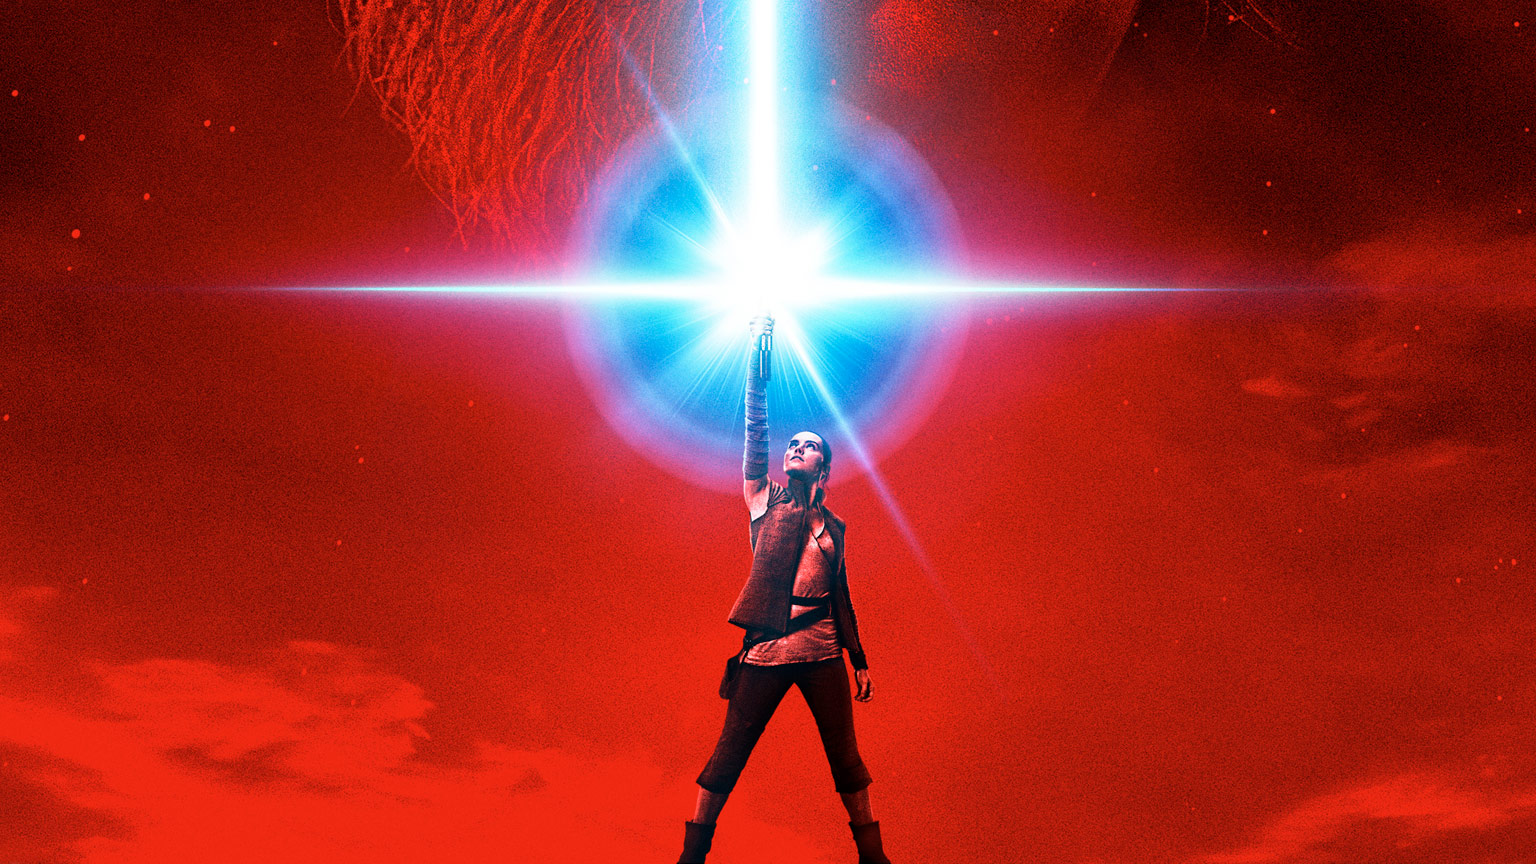 Where and how to watch the new Star Wars: The Last Jedi trailer.